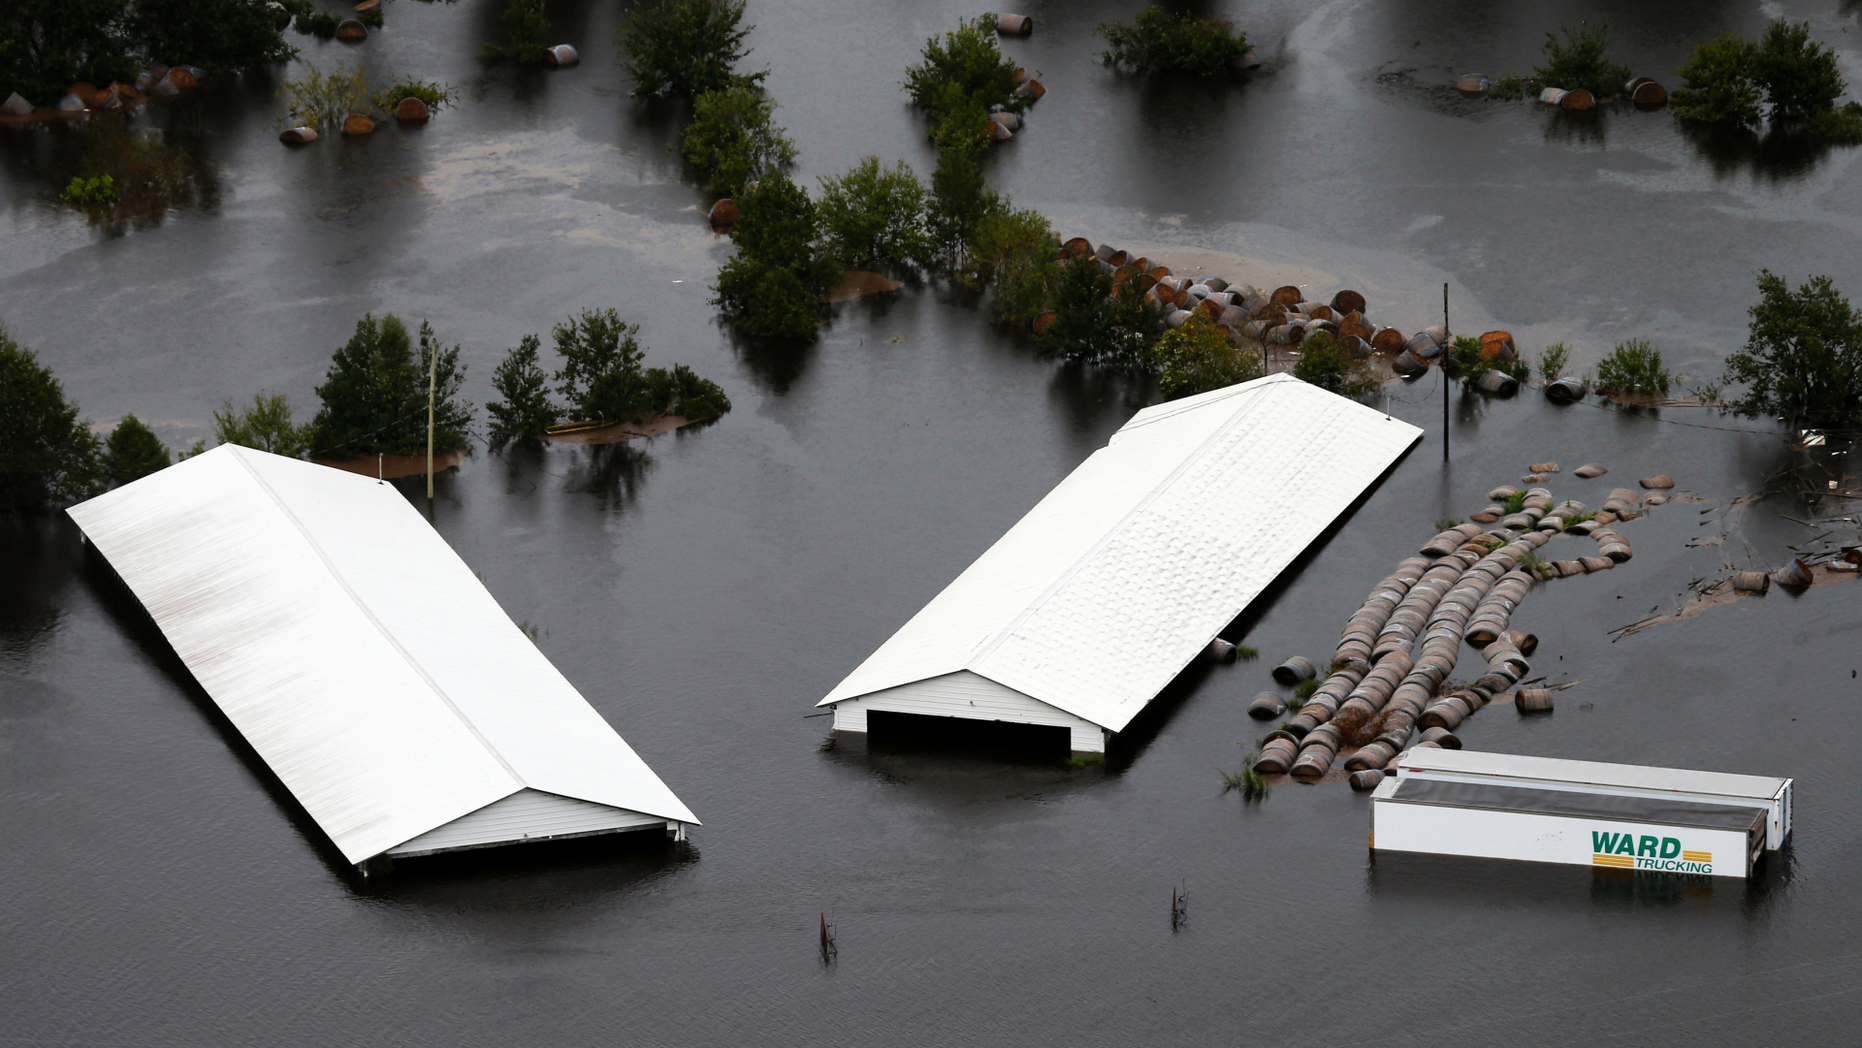 Farm buildings are inundated with floodwater from Hurricane Florence near Trenton, N.C., Sunday, Sept. 16, 2018. (AP Photo/Steve Helber)